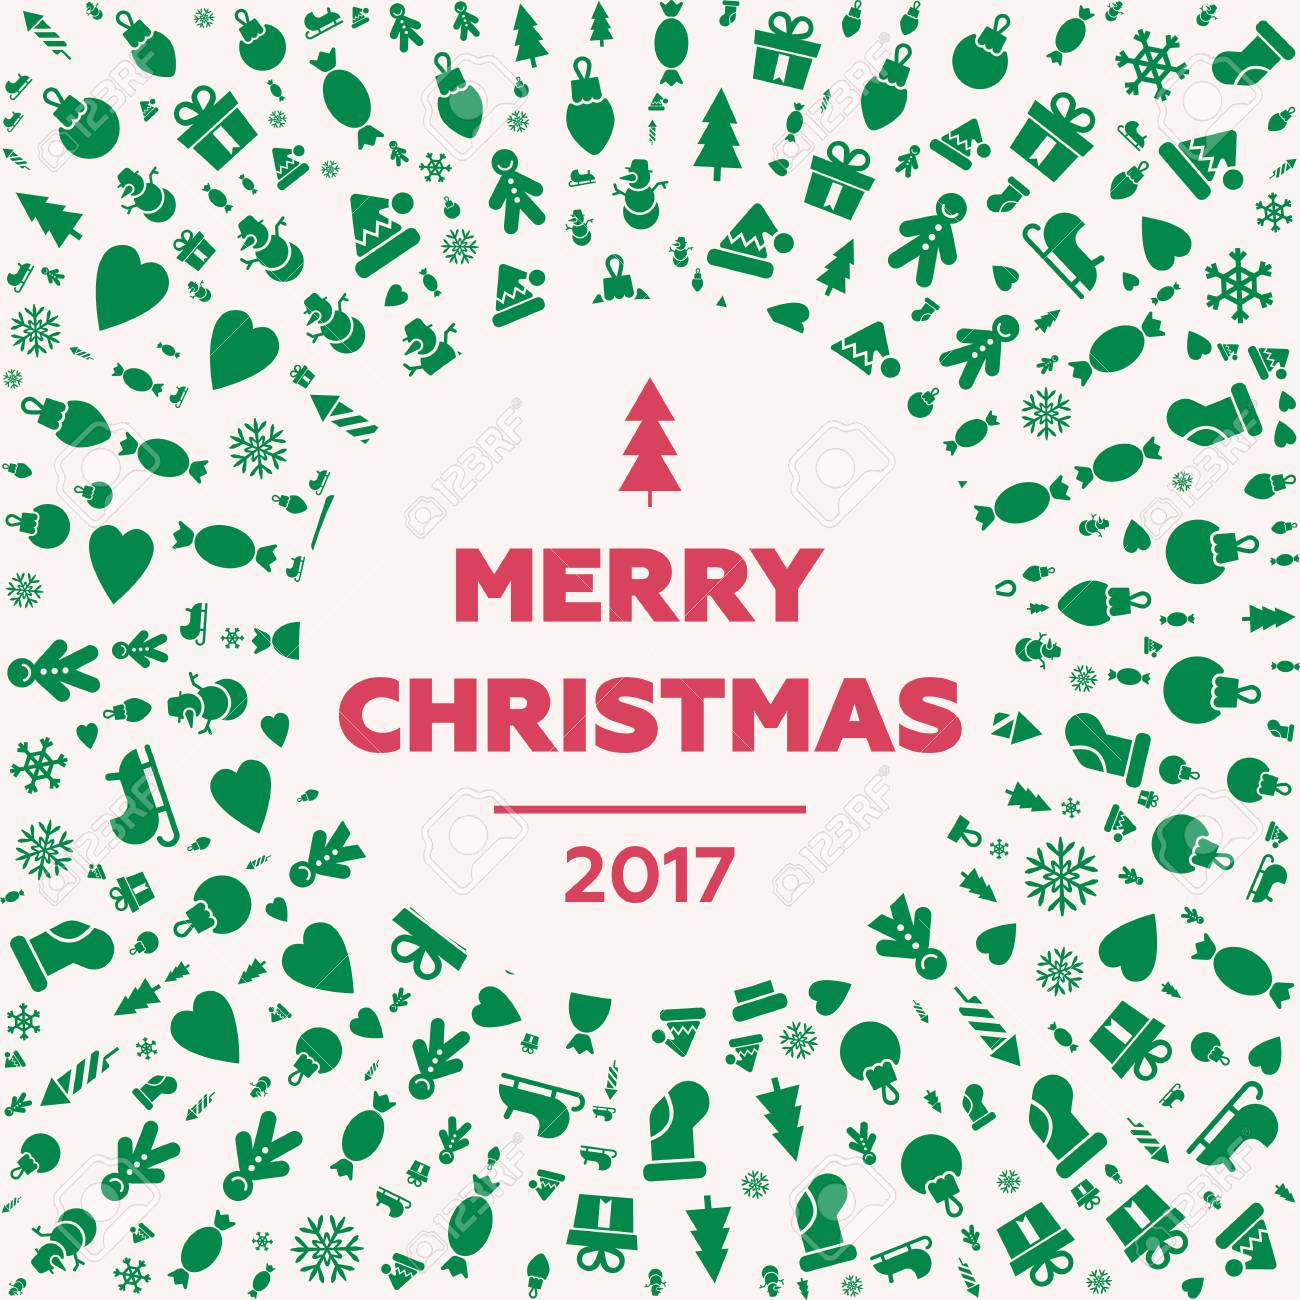 merry christmas and happy new year cards quality vector flat royalty free cliparts vectors and stock illustration image 87777533 123rf com